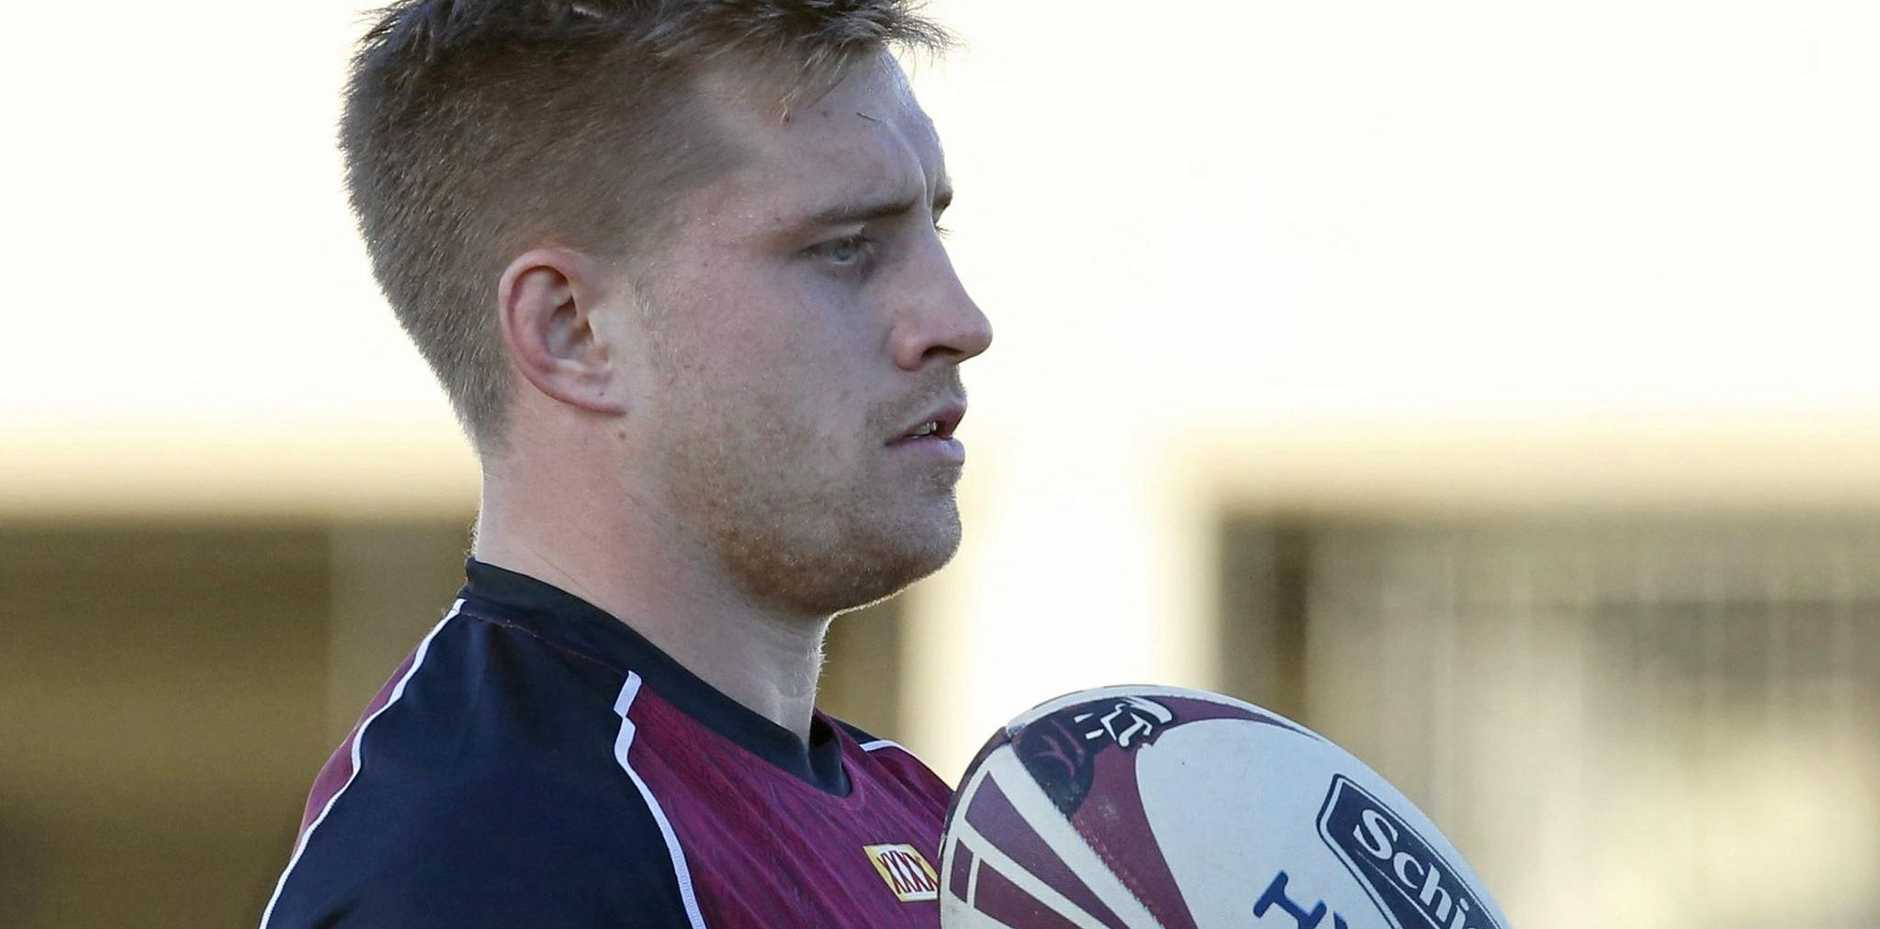 Cameron Munster will make his debut in tonight's Origin series decider at Suncorp Stadium.